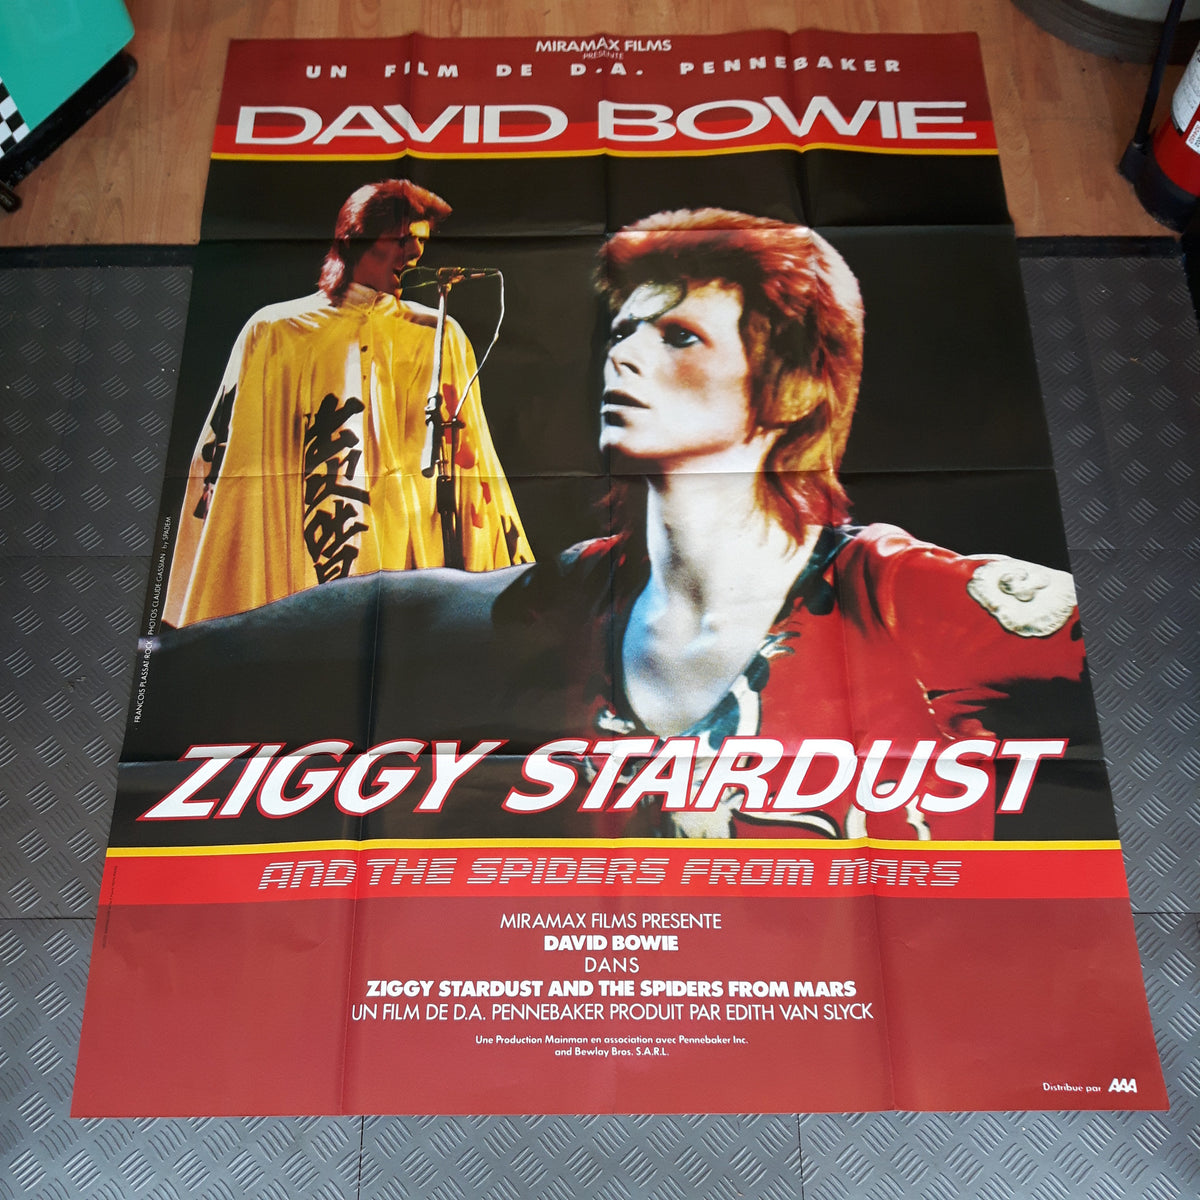 Ziggy Stardust Movie Poster